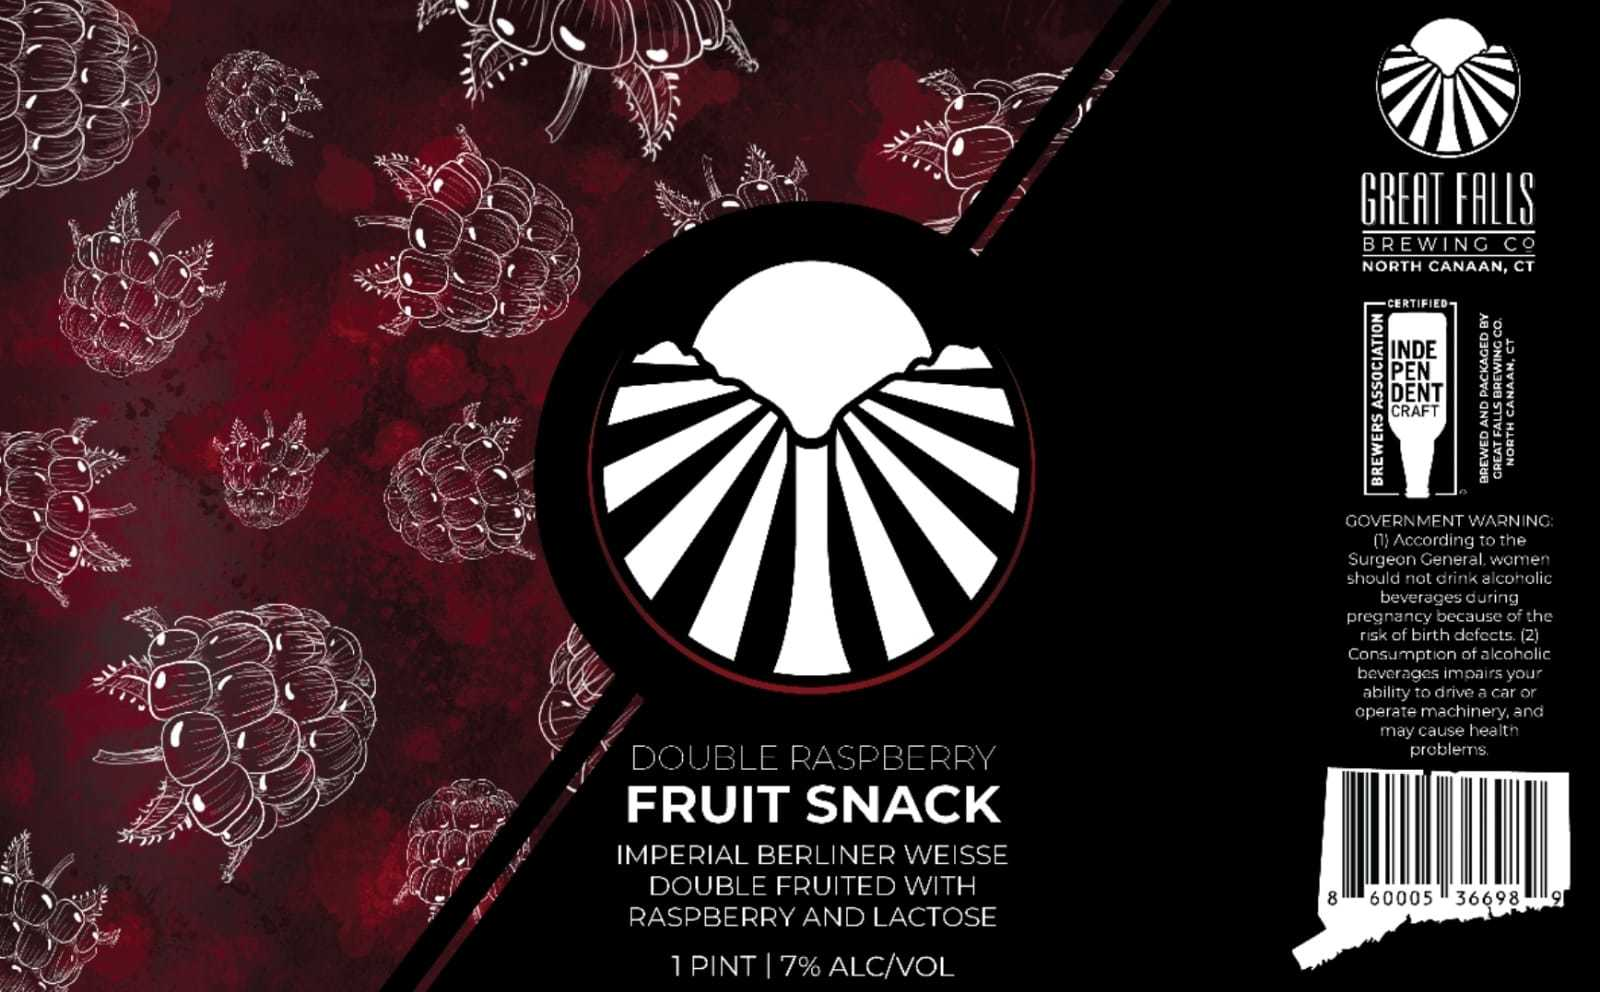 Great Falls Double Raspberry Fruit Snack beer Label Full Size